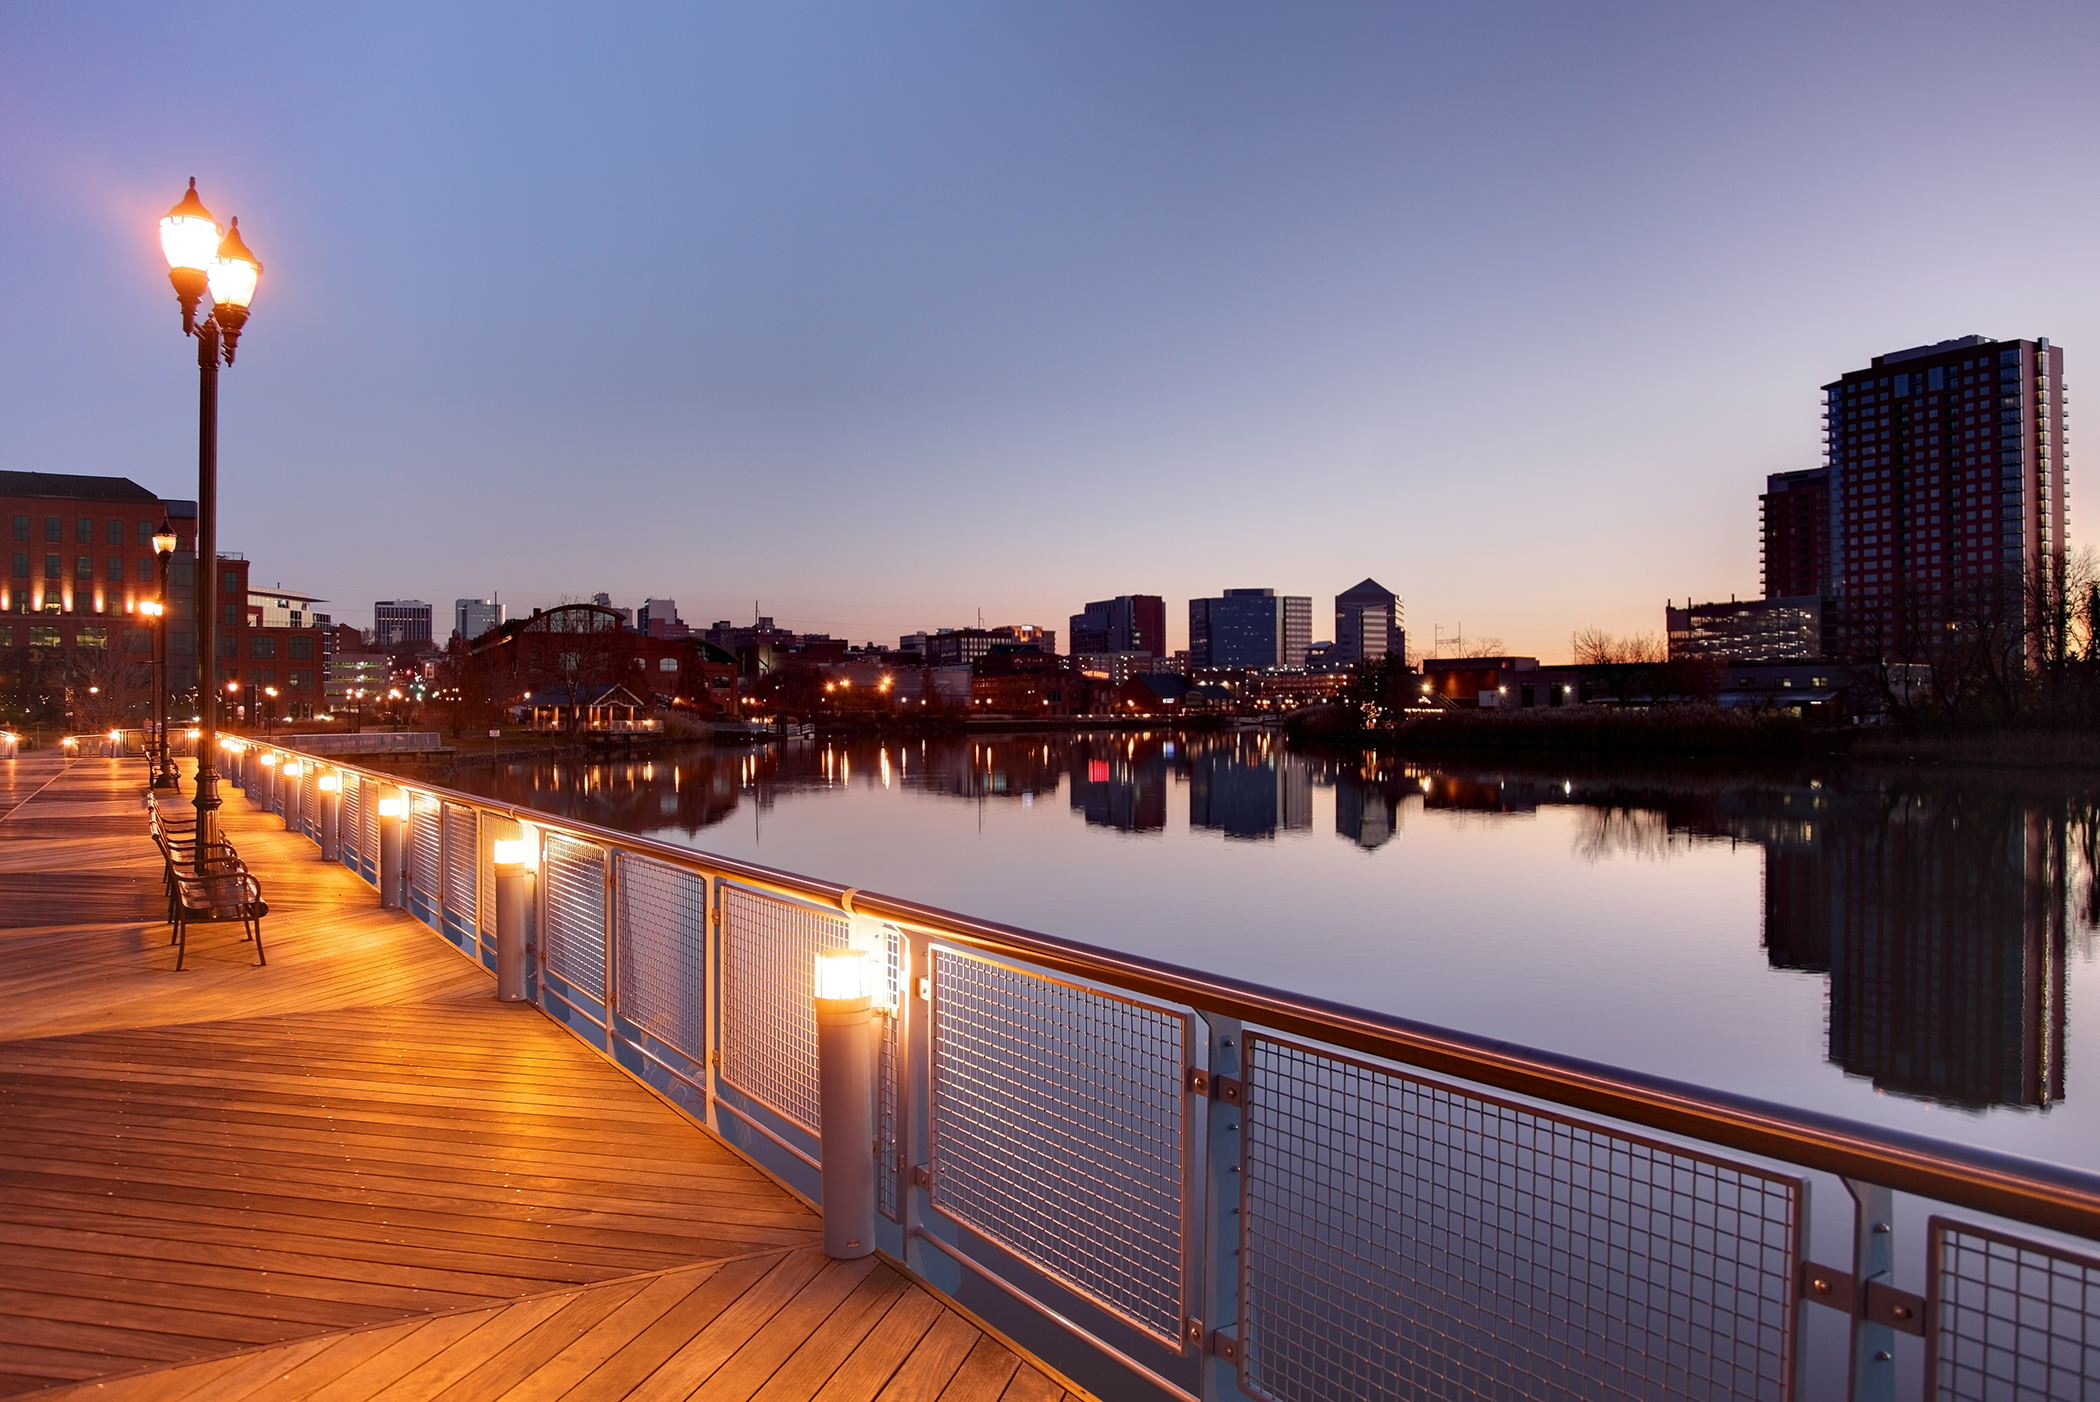 Wilmington, Delaware. At the confluence of the Christina and Brandywine rivers, Wilmington has been undergoing a waterfront revival.